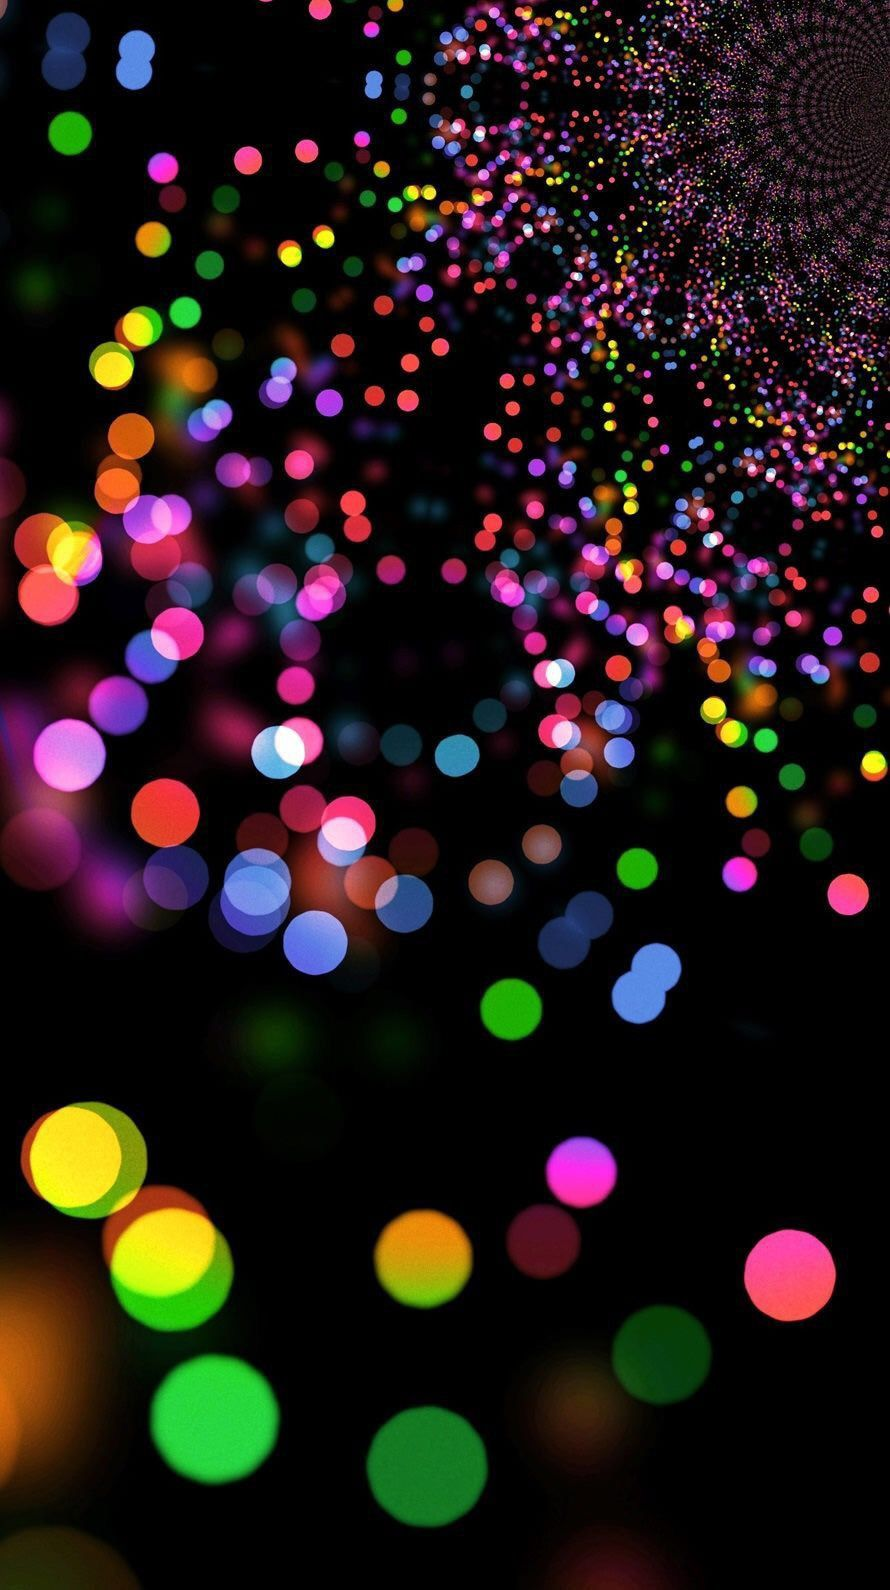 Bokehwallpaper Attractive Androidwallpaper Wallpapertumblr Wallpaperforme Bokeh Wallpaper Black Wallpaper Rainbow Wallpaper